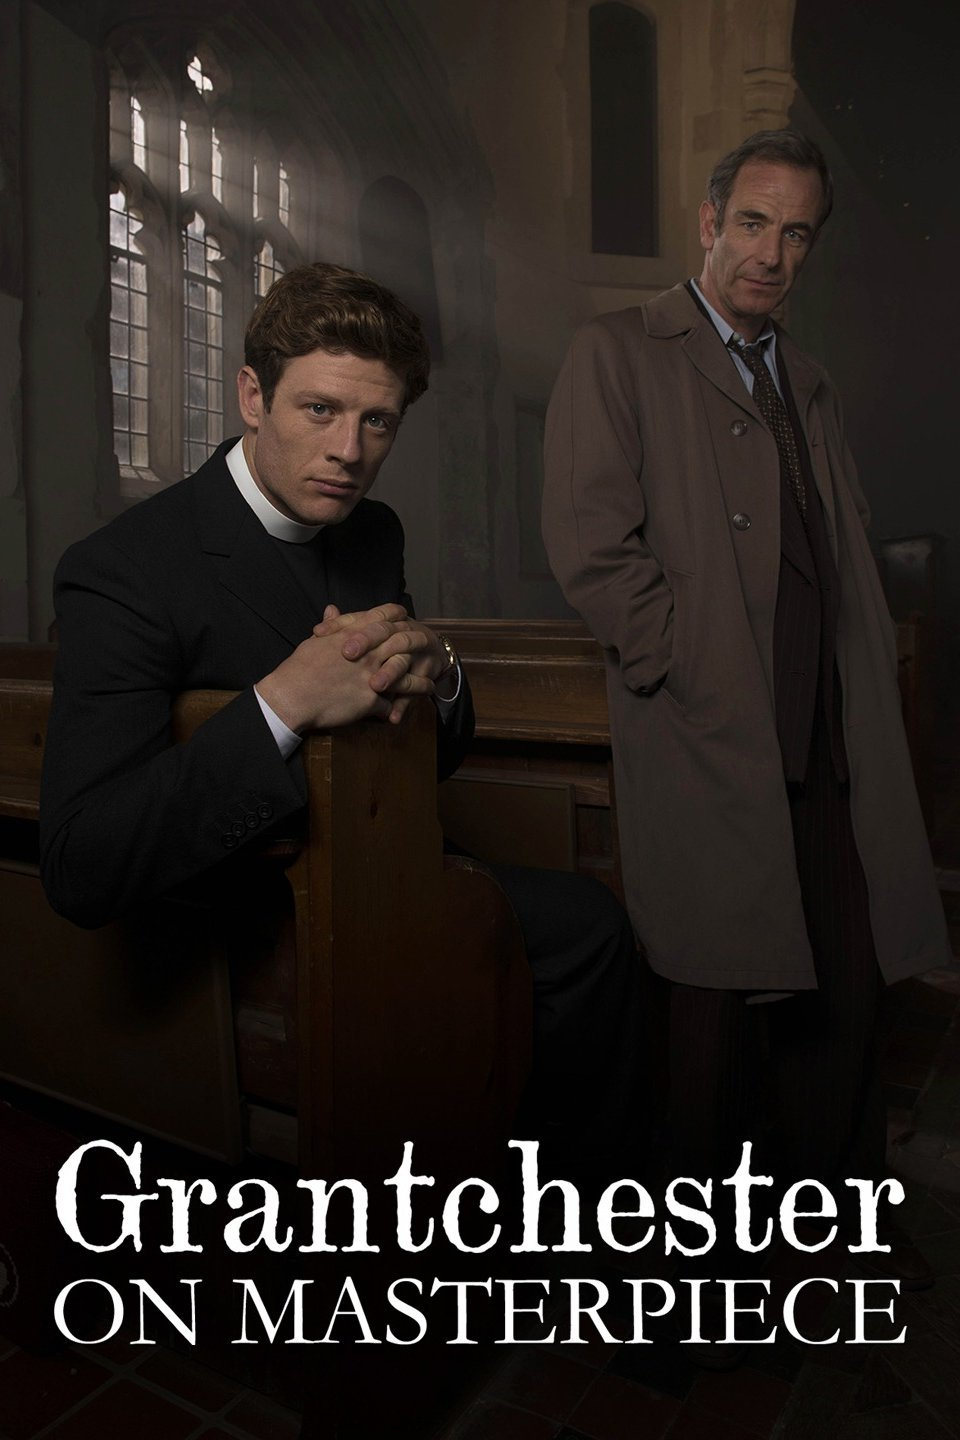 Grantchester Tv Series Download Season 3 Episode 1 480p HDTV Micromkv